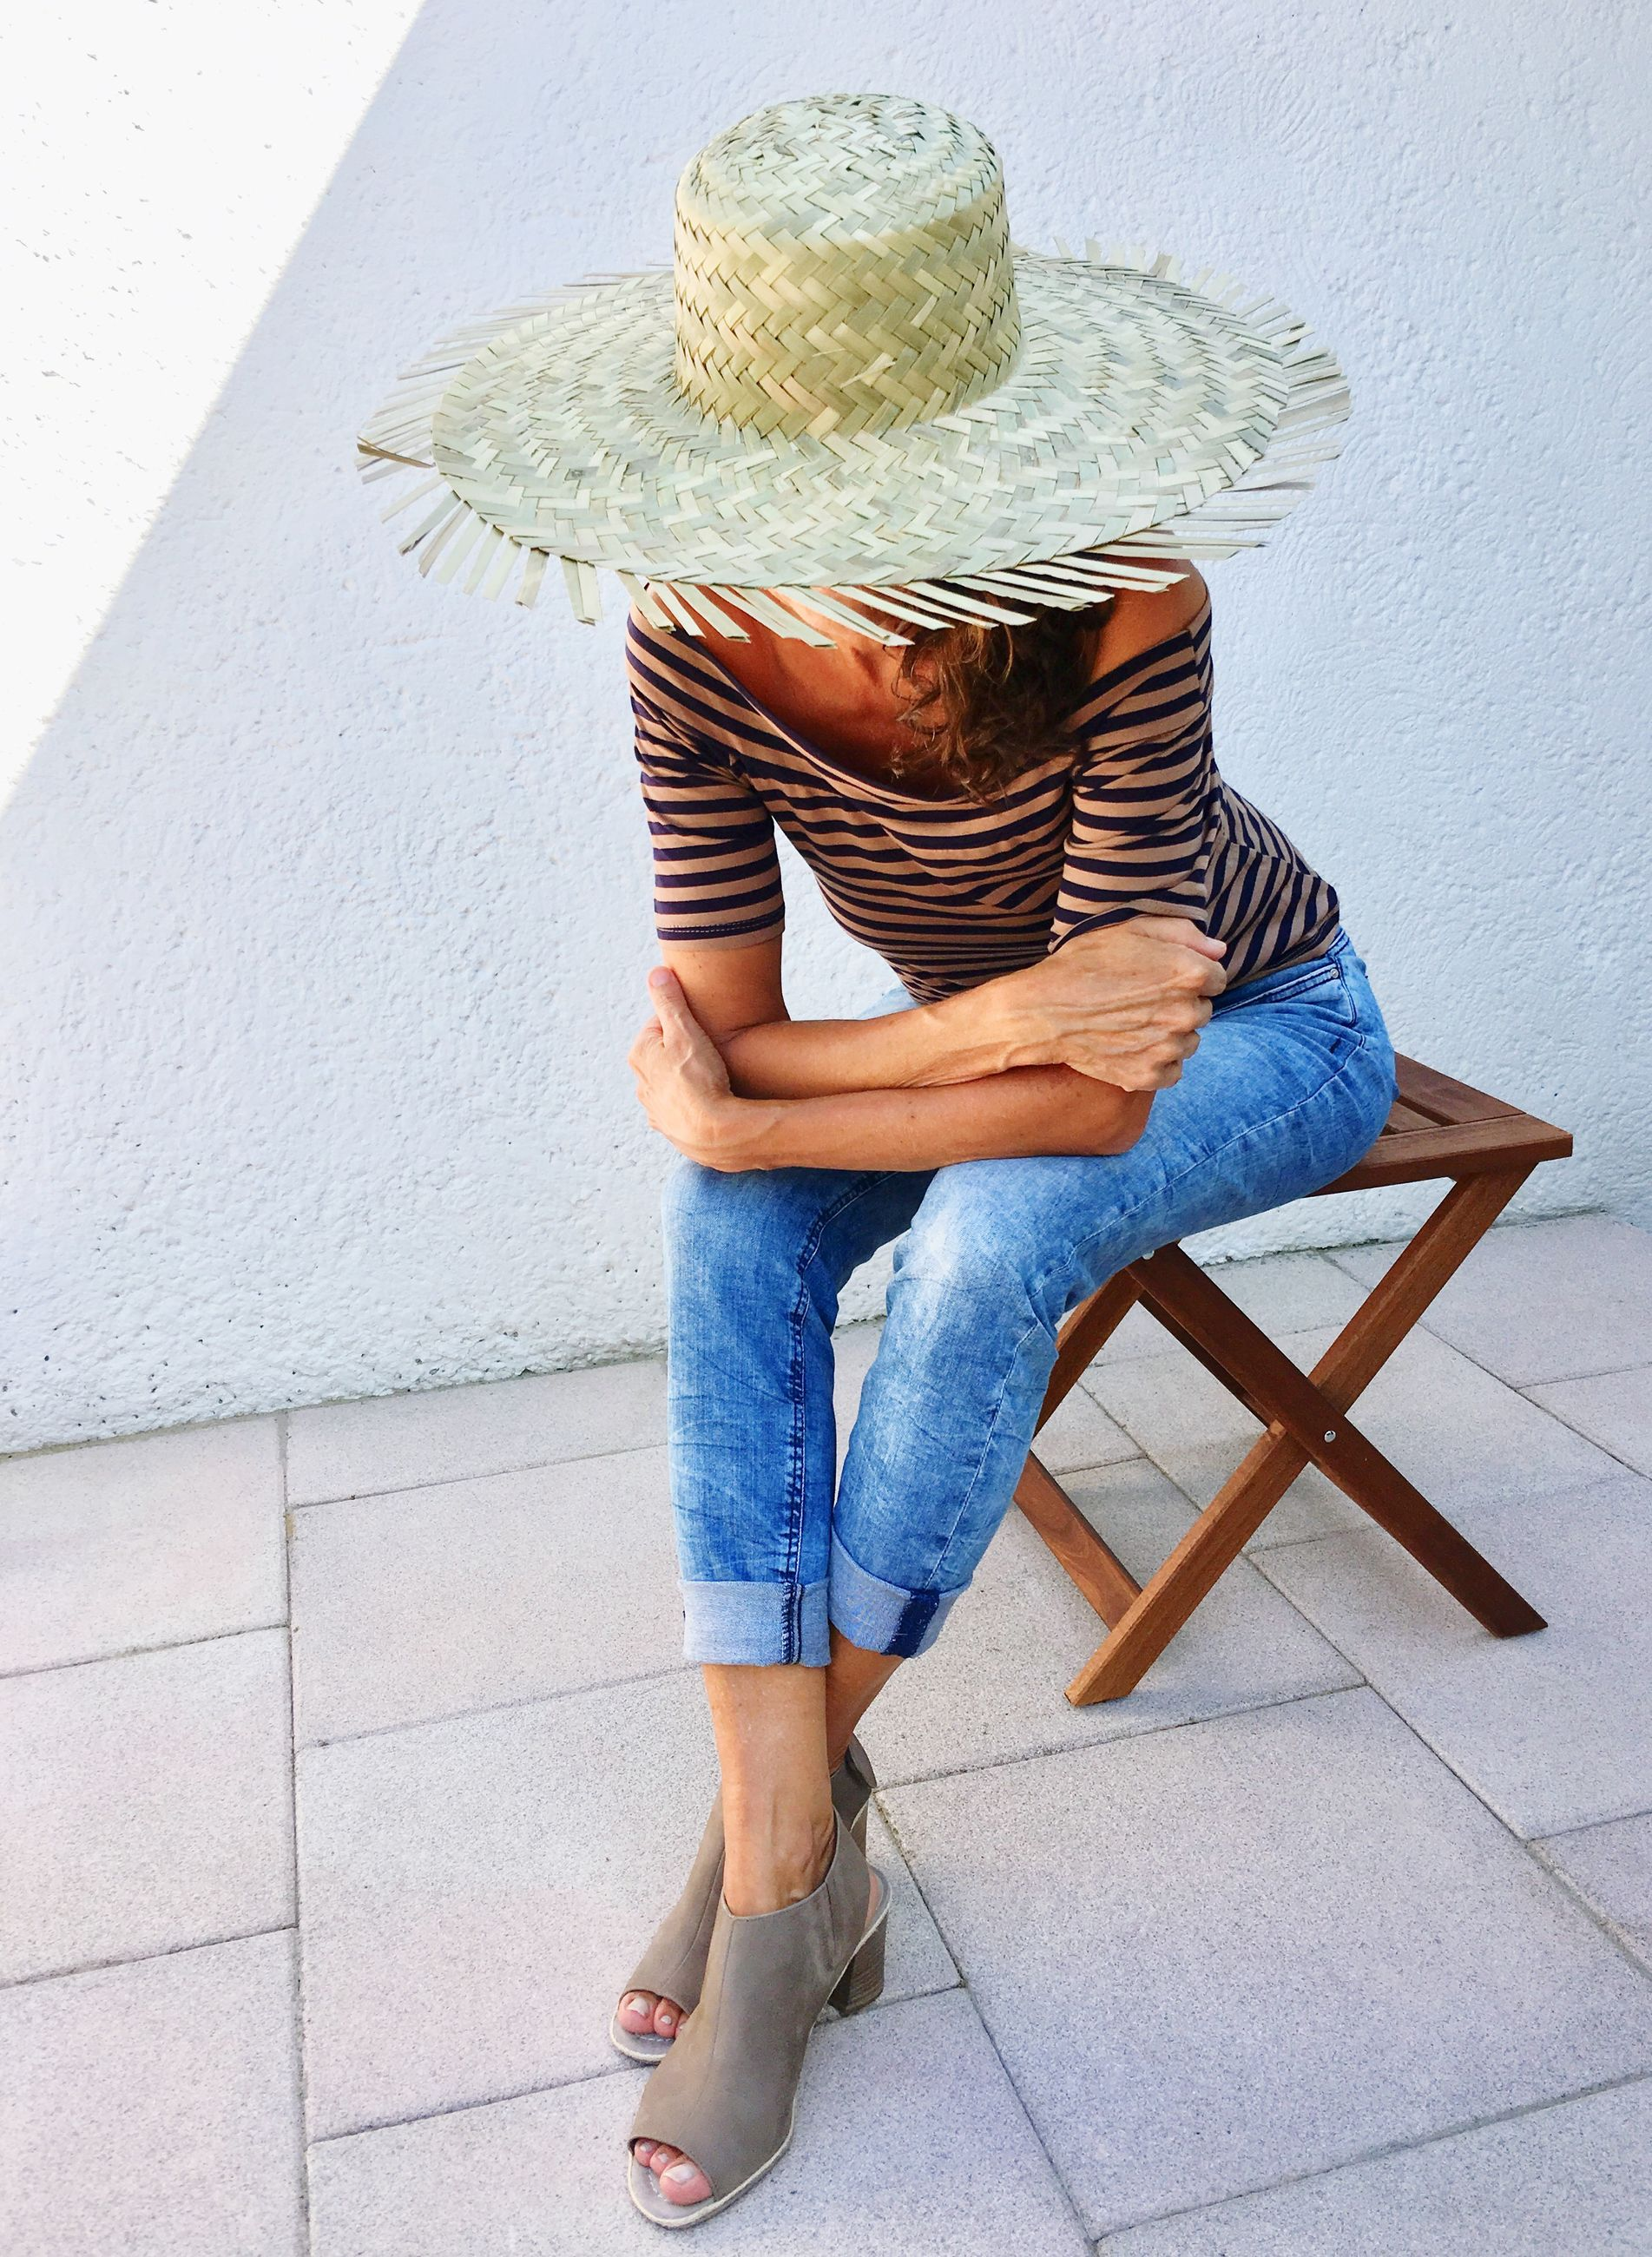 Woman wearing hat while sitting against wall